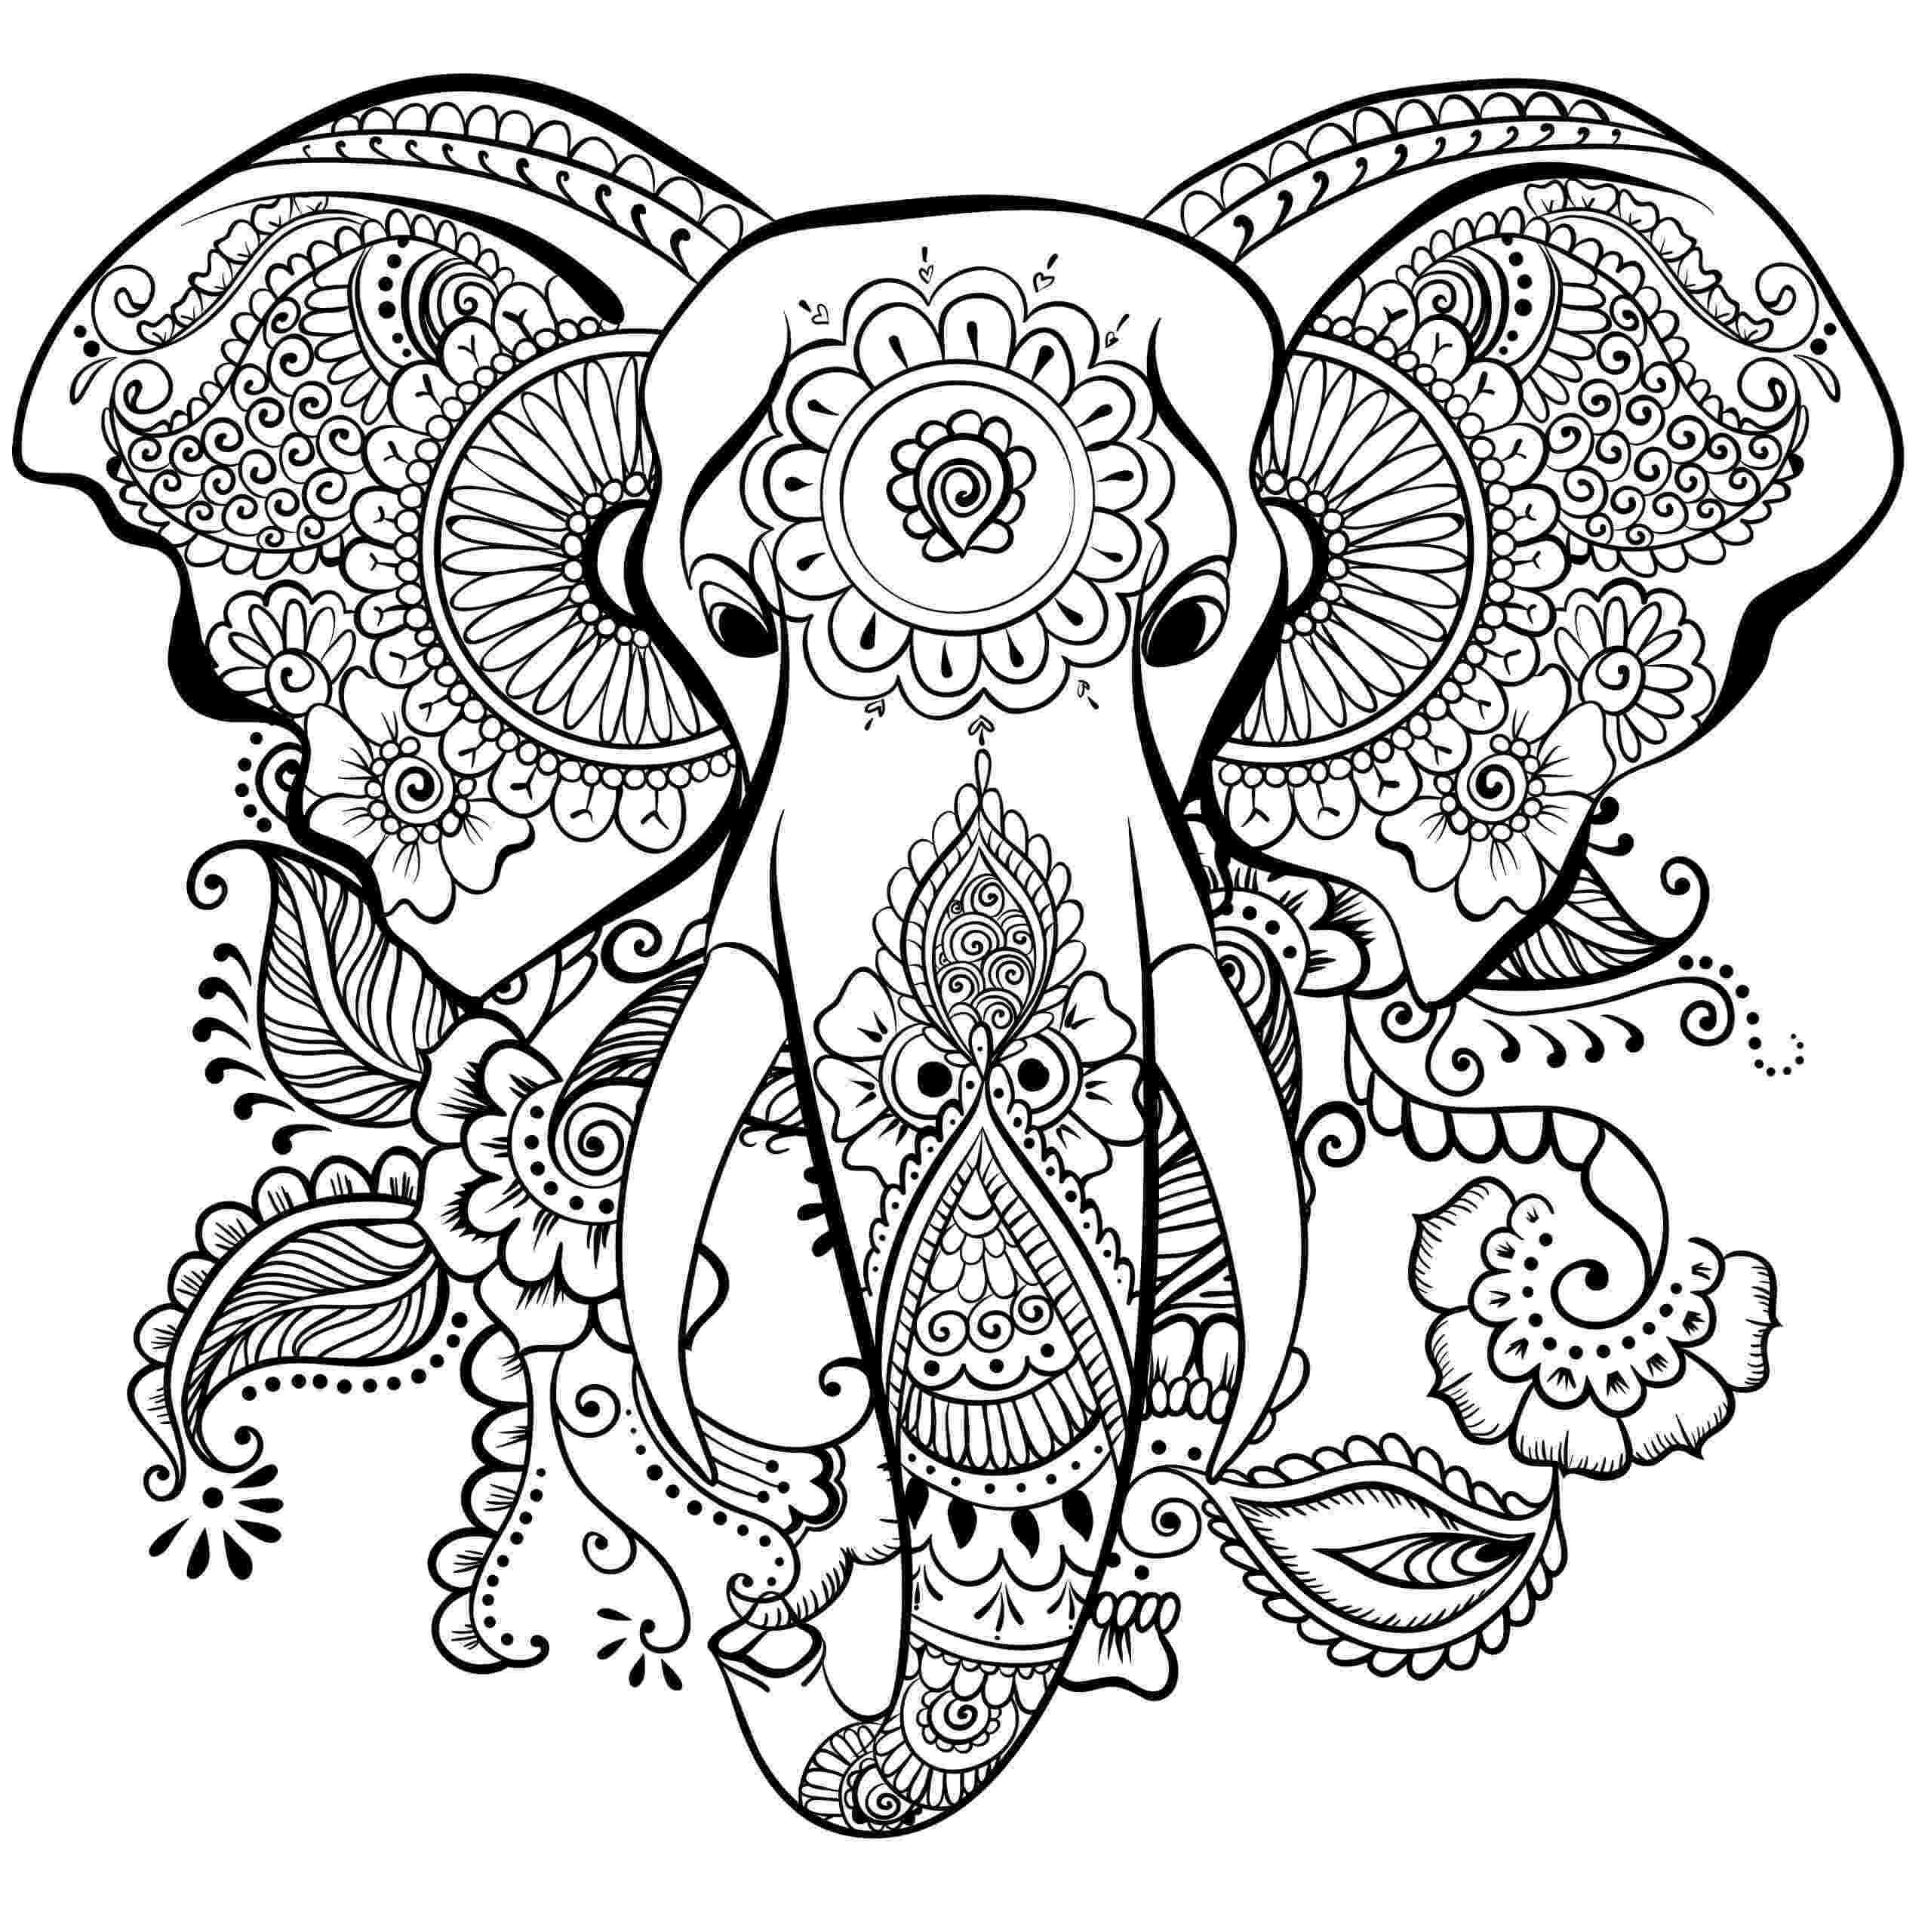 hard animal coloring pages coloring pages for adults difficult animals 7 coloring pages coloring hard animal